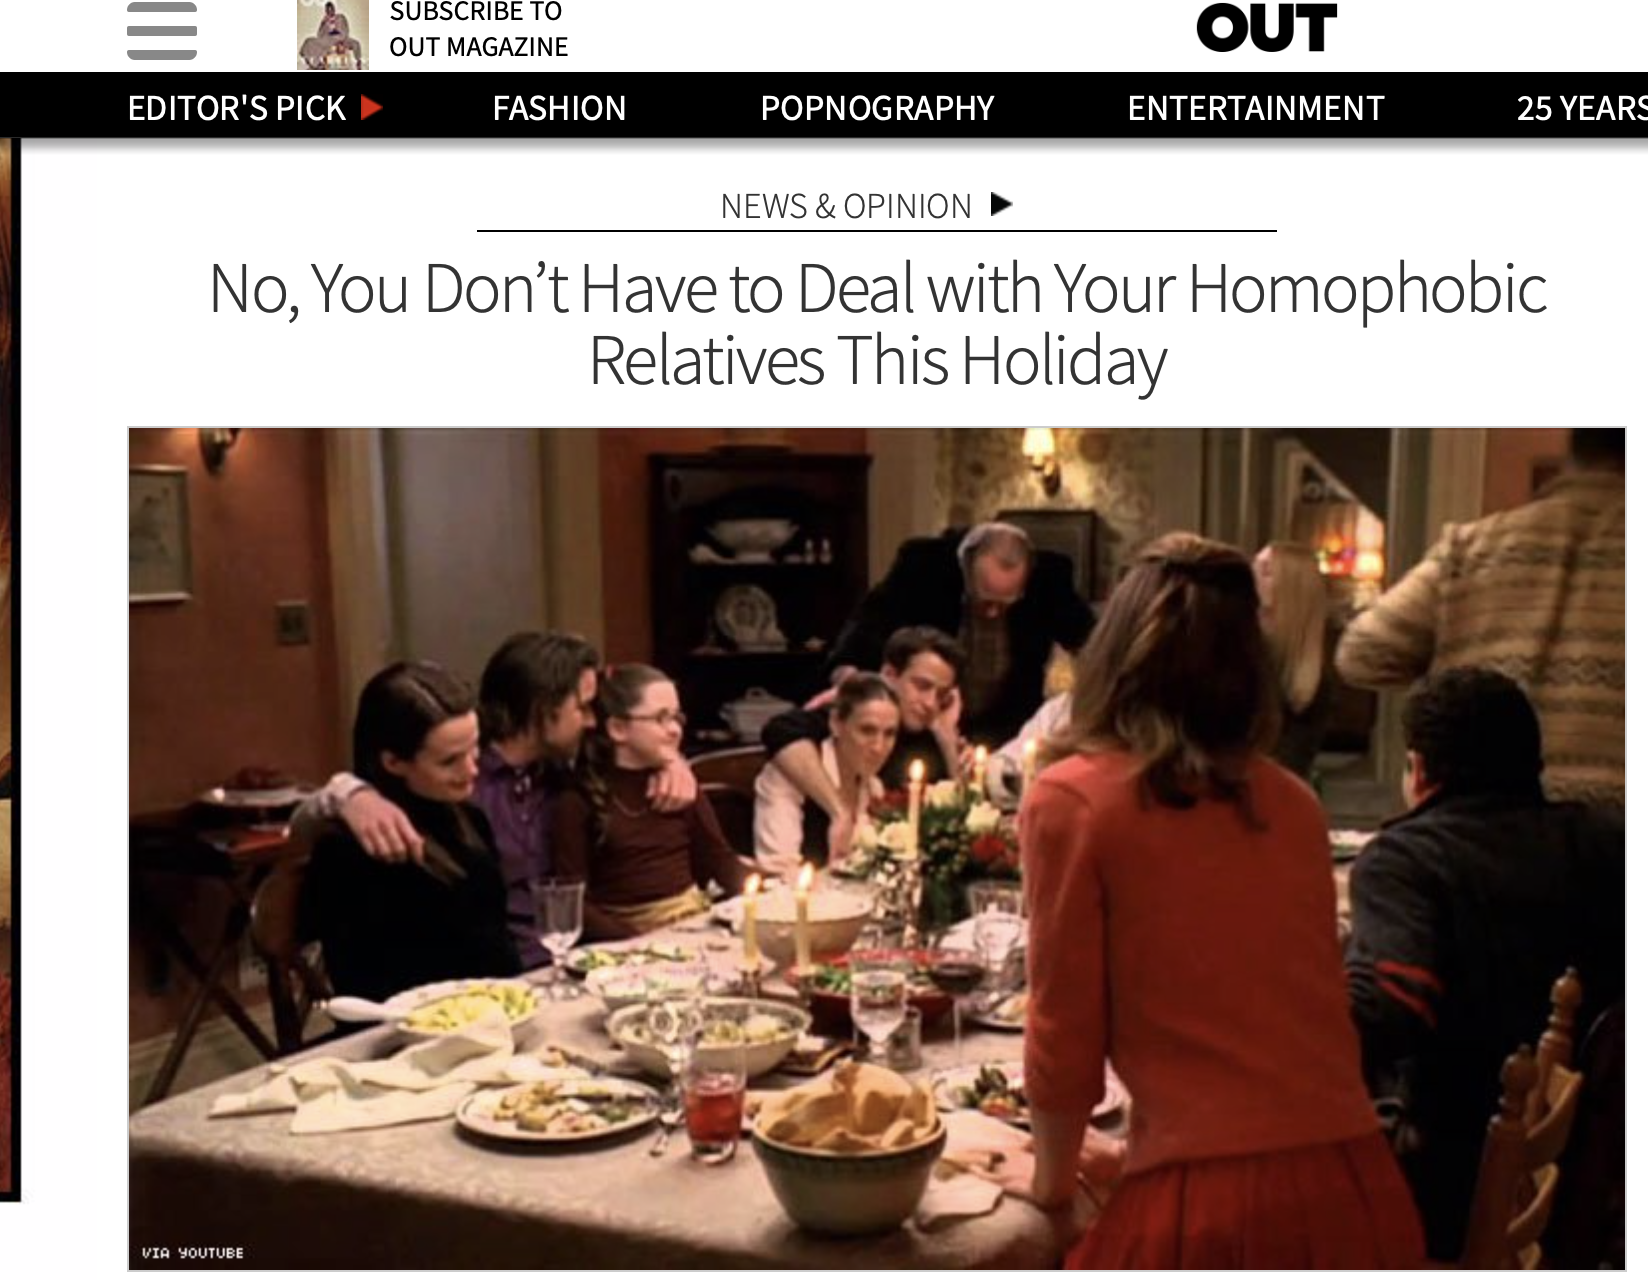 OUT MAGAZINE | No, You Don't Have to Deal with Your Homophobic Relatives This Holiday - From navigating conversations about your identity, to the intentional jabs certain homophobic uncles often make at your expense, prioritizing wellness over family ties might be the way to go.